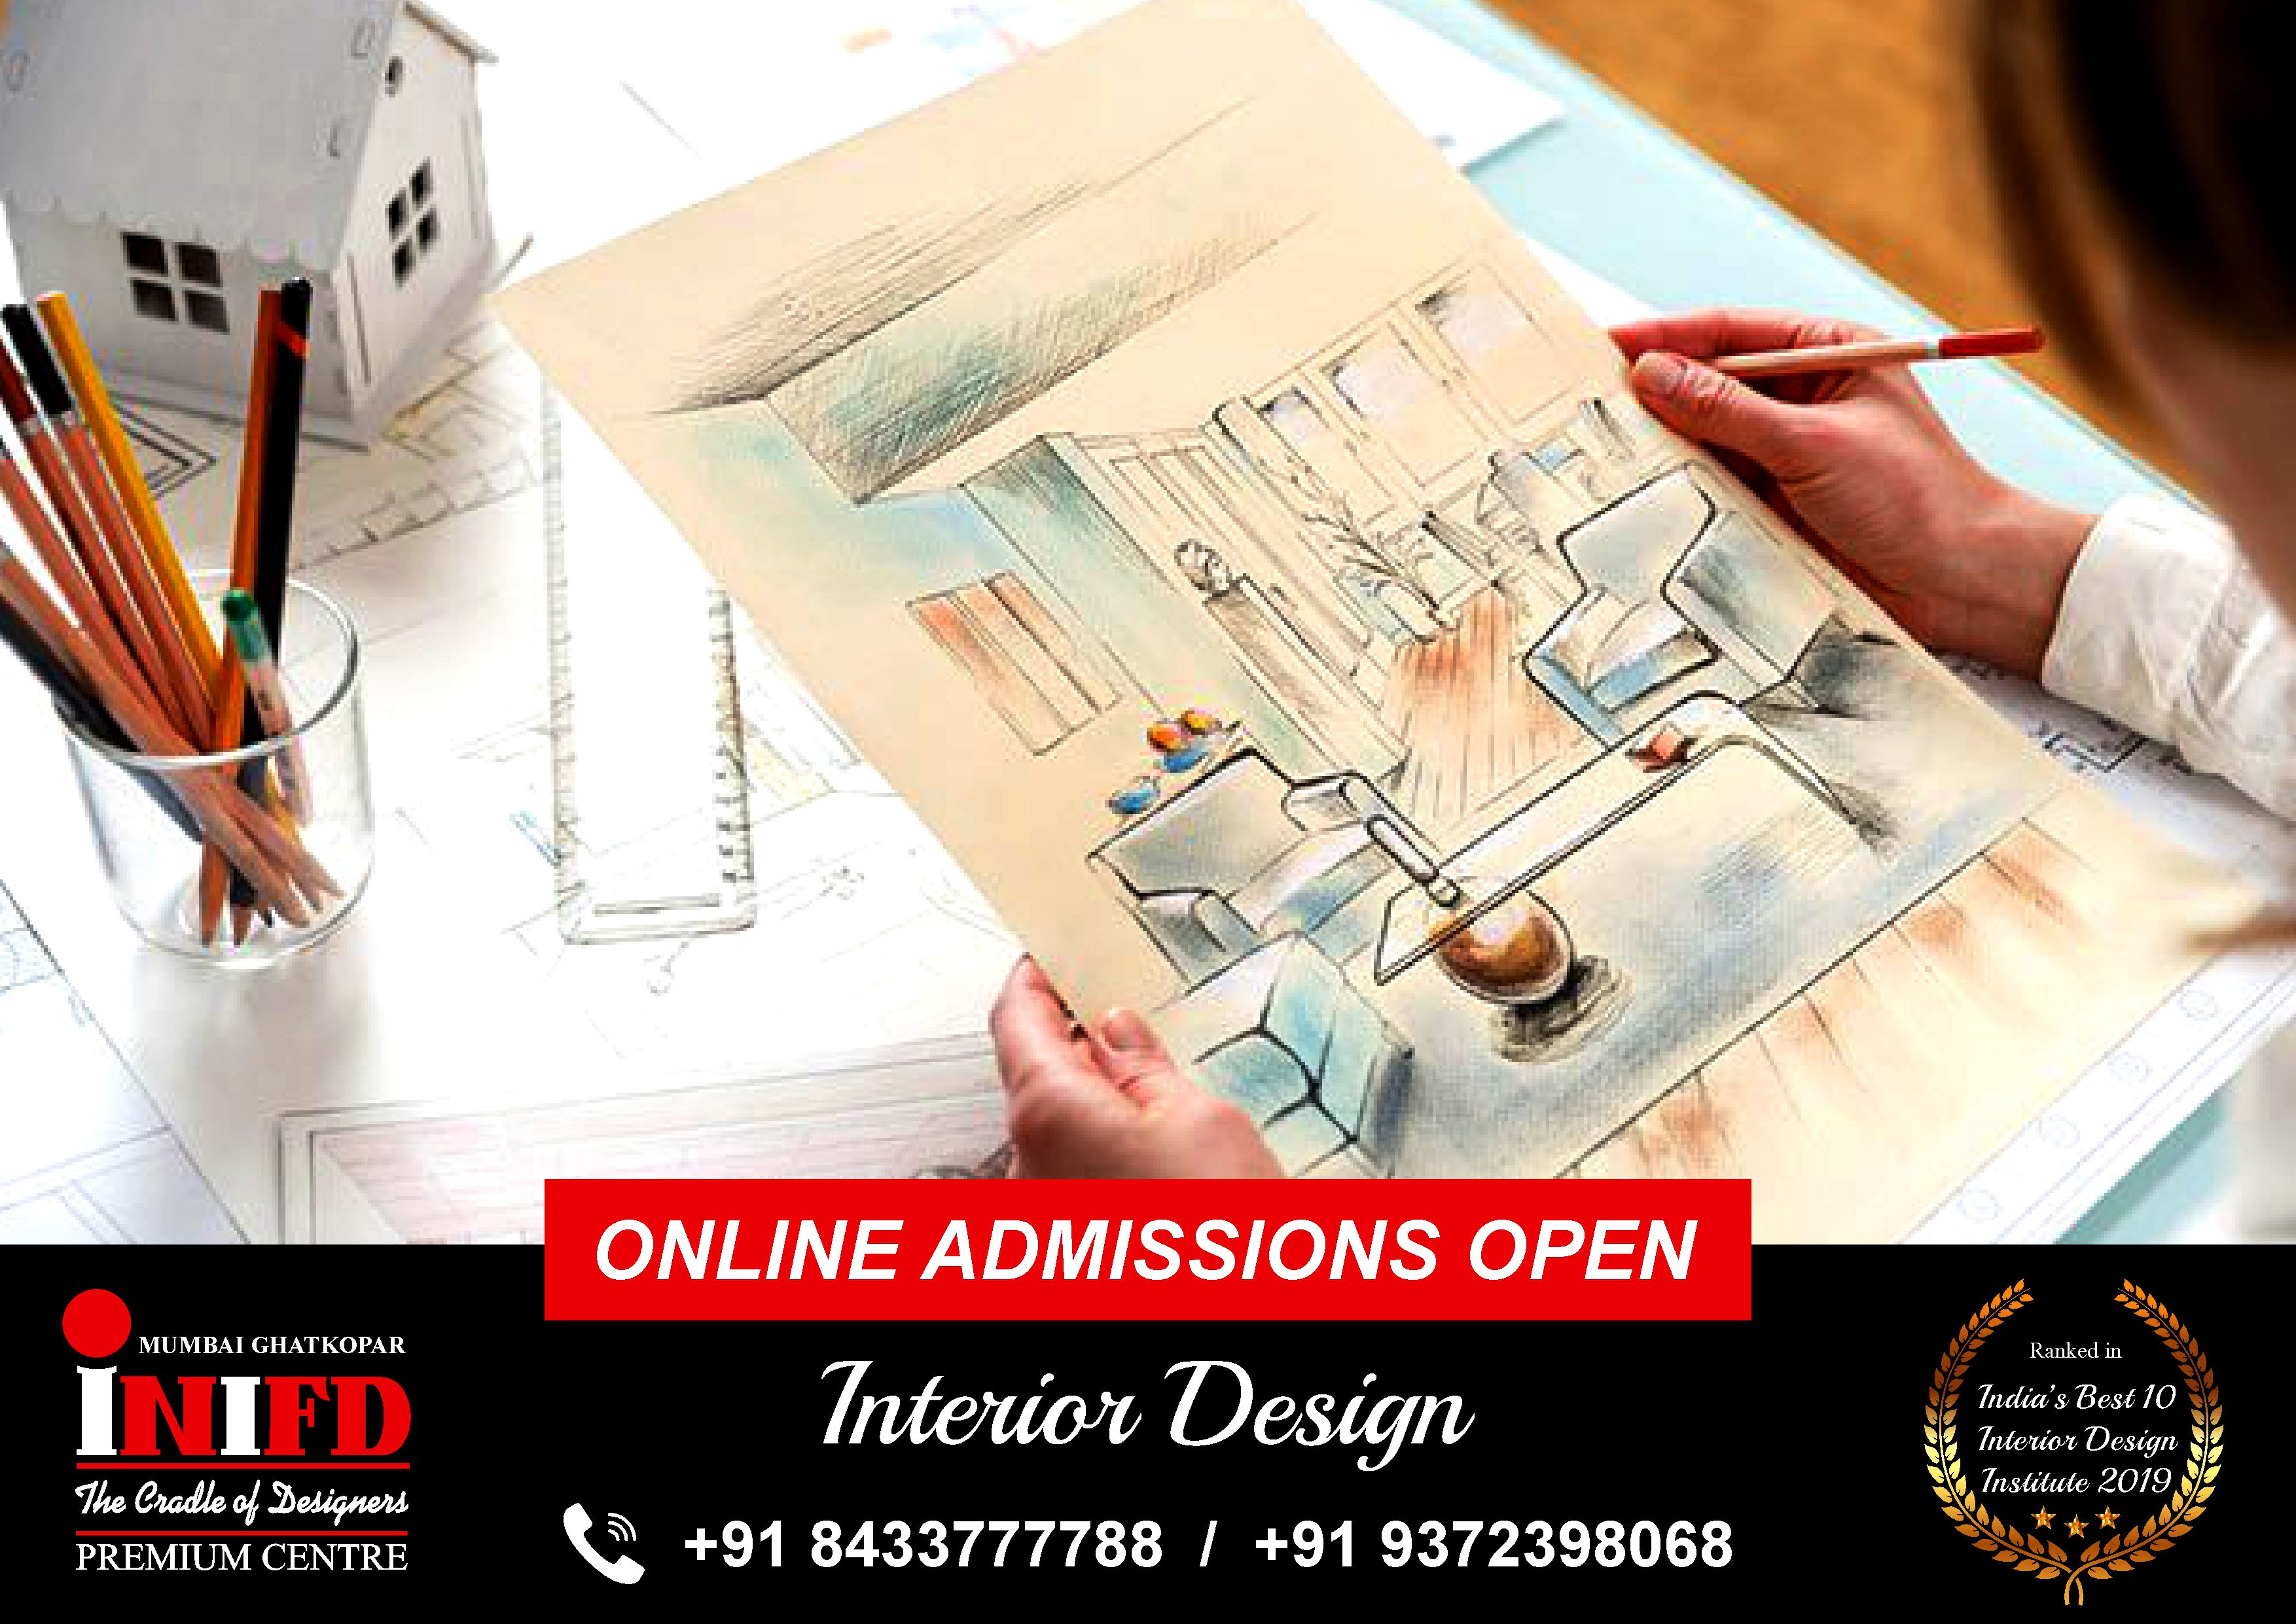 Looking For The Best College In Mumbai For Interior Designing Courses Join Inifd Mumbai Ghatkopar Online In 2020 Interior Design Institute College Fun Admissions